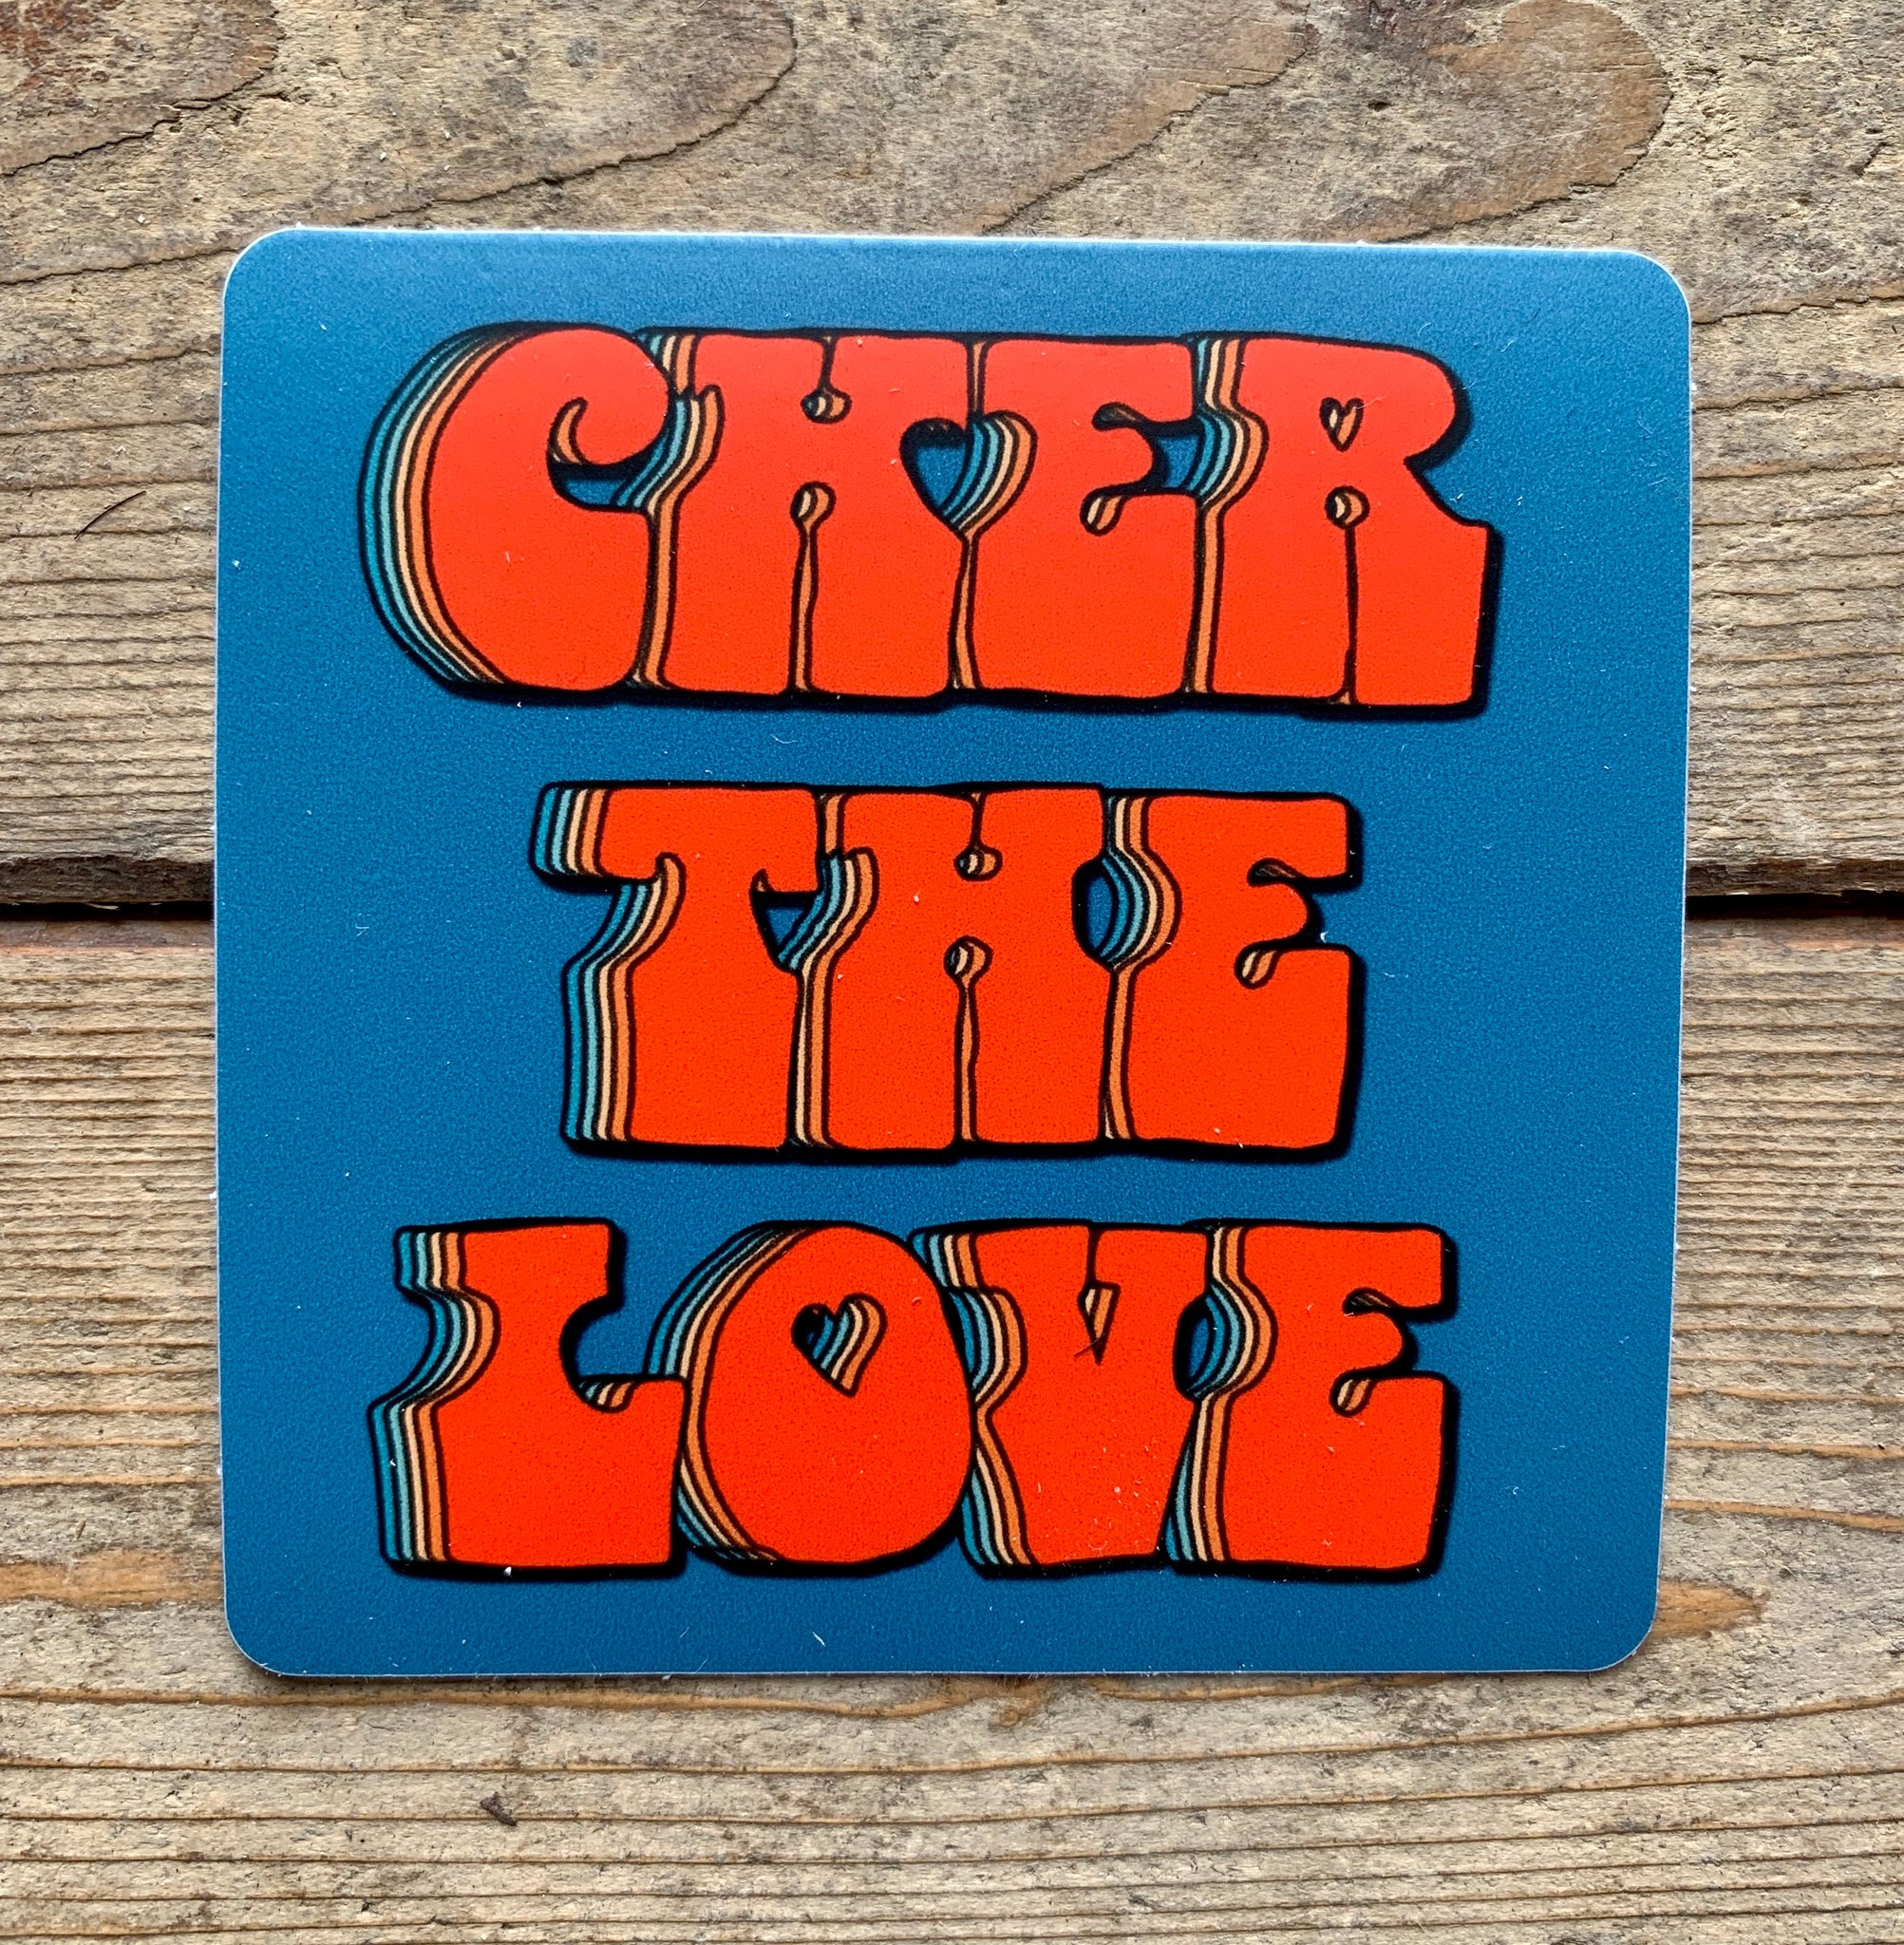 Cher The Love Stickers - Blue